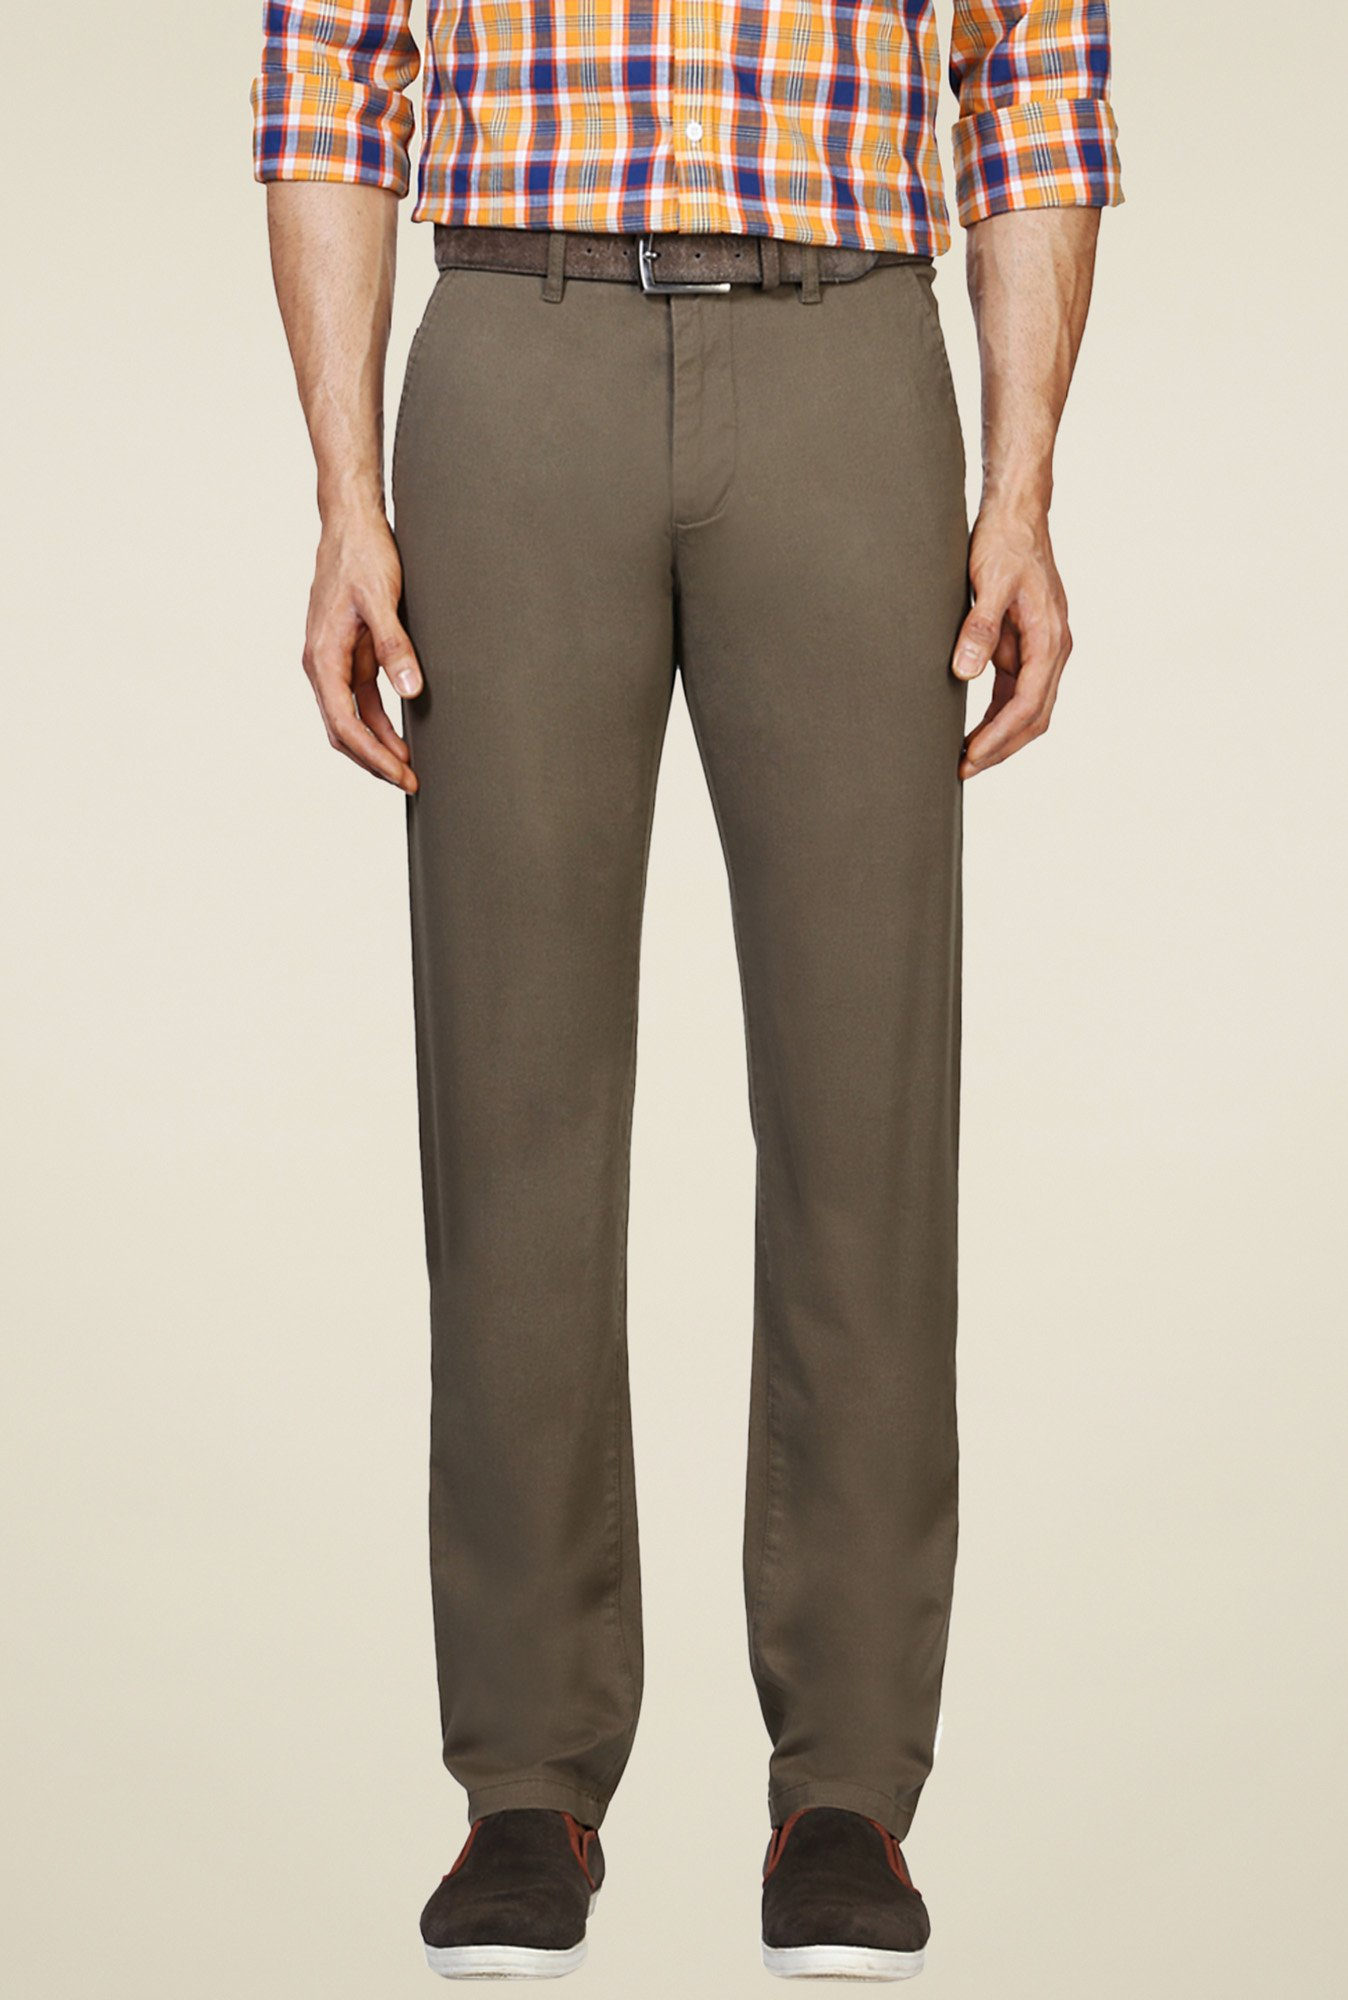 Van Heusen Brown Slim Fit Mid Rise Trousers